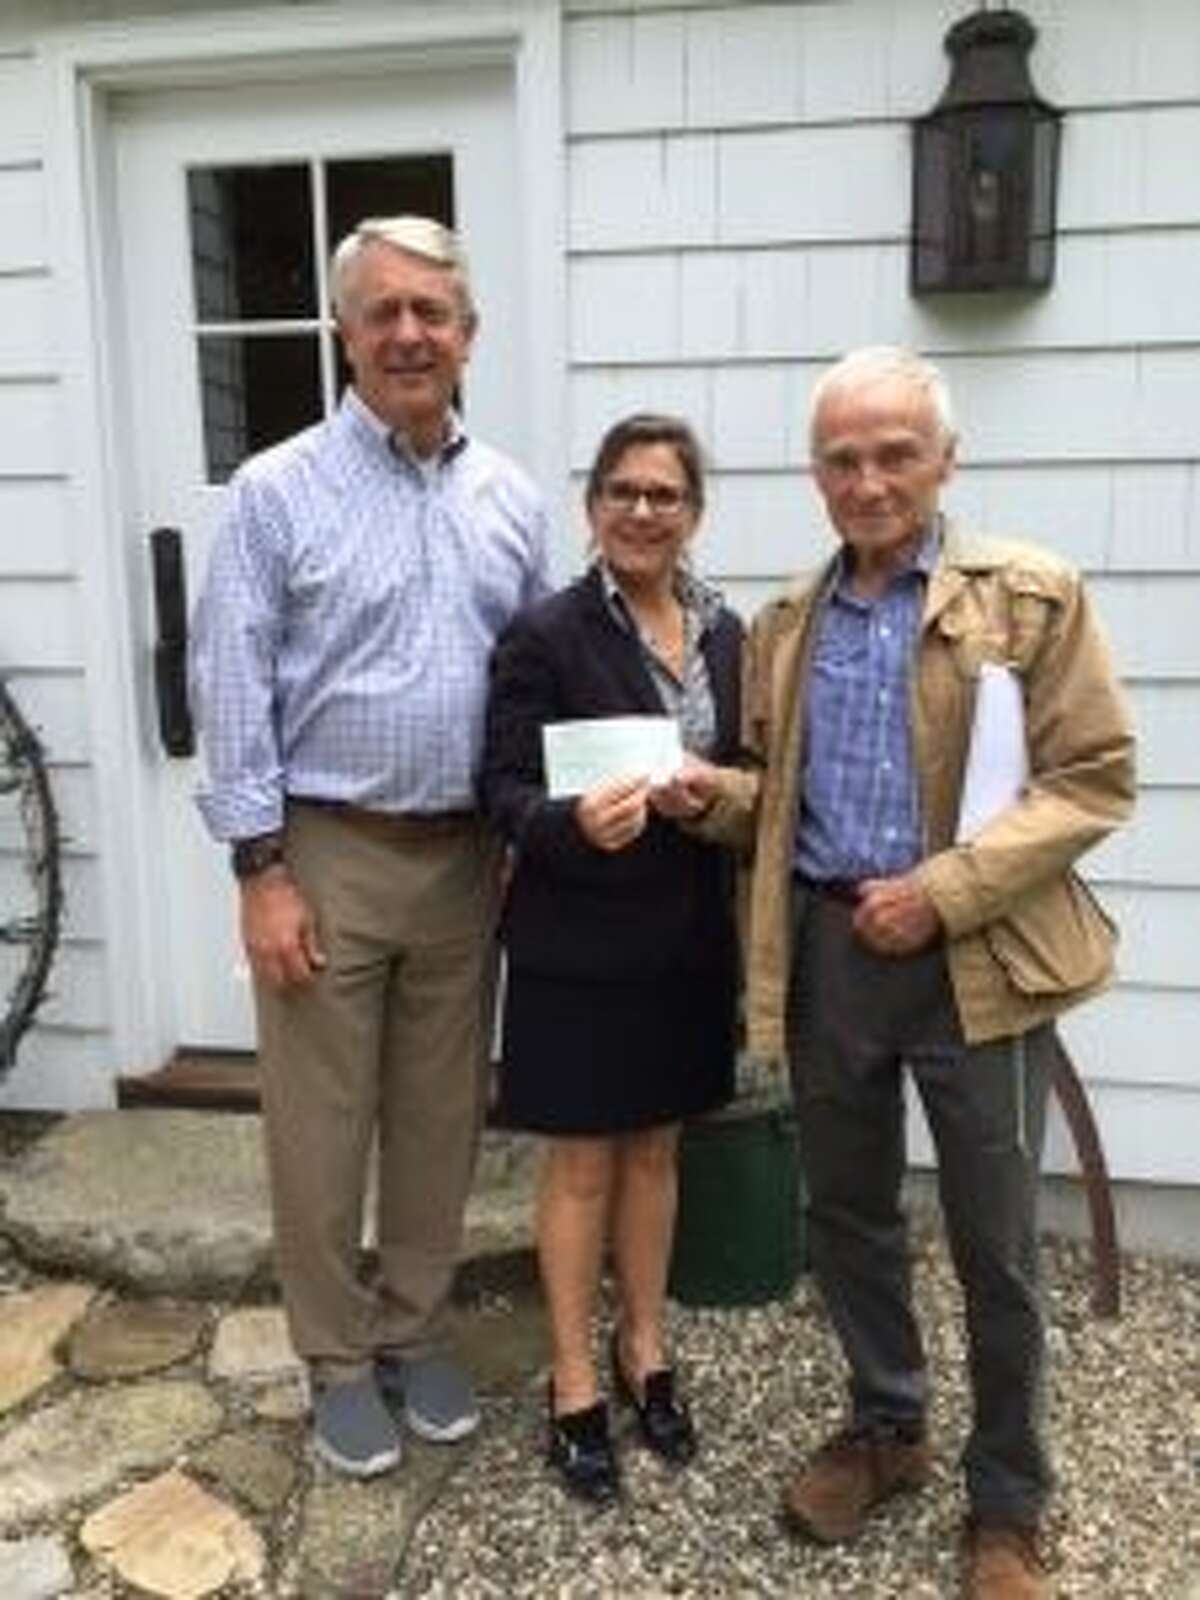 The New Canaan Library is the recipient of the STEAM grant.